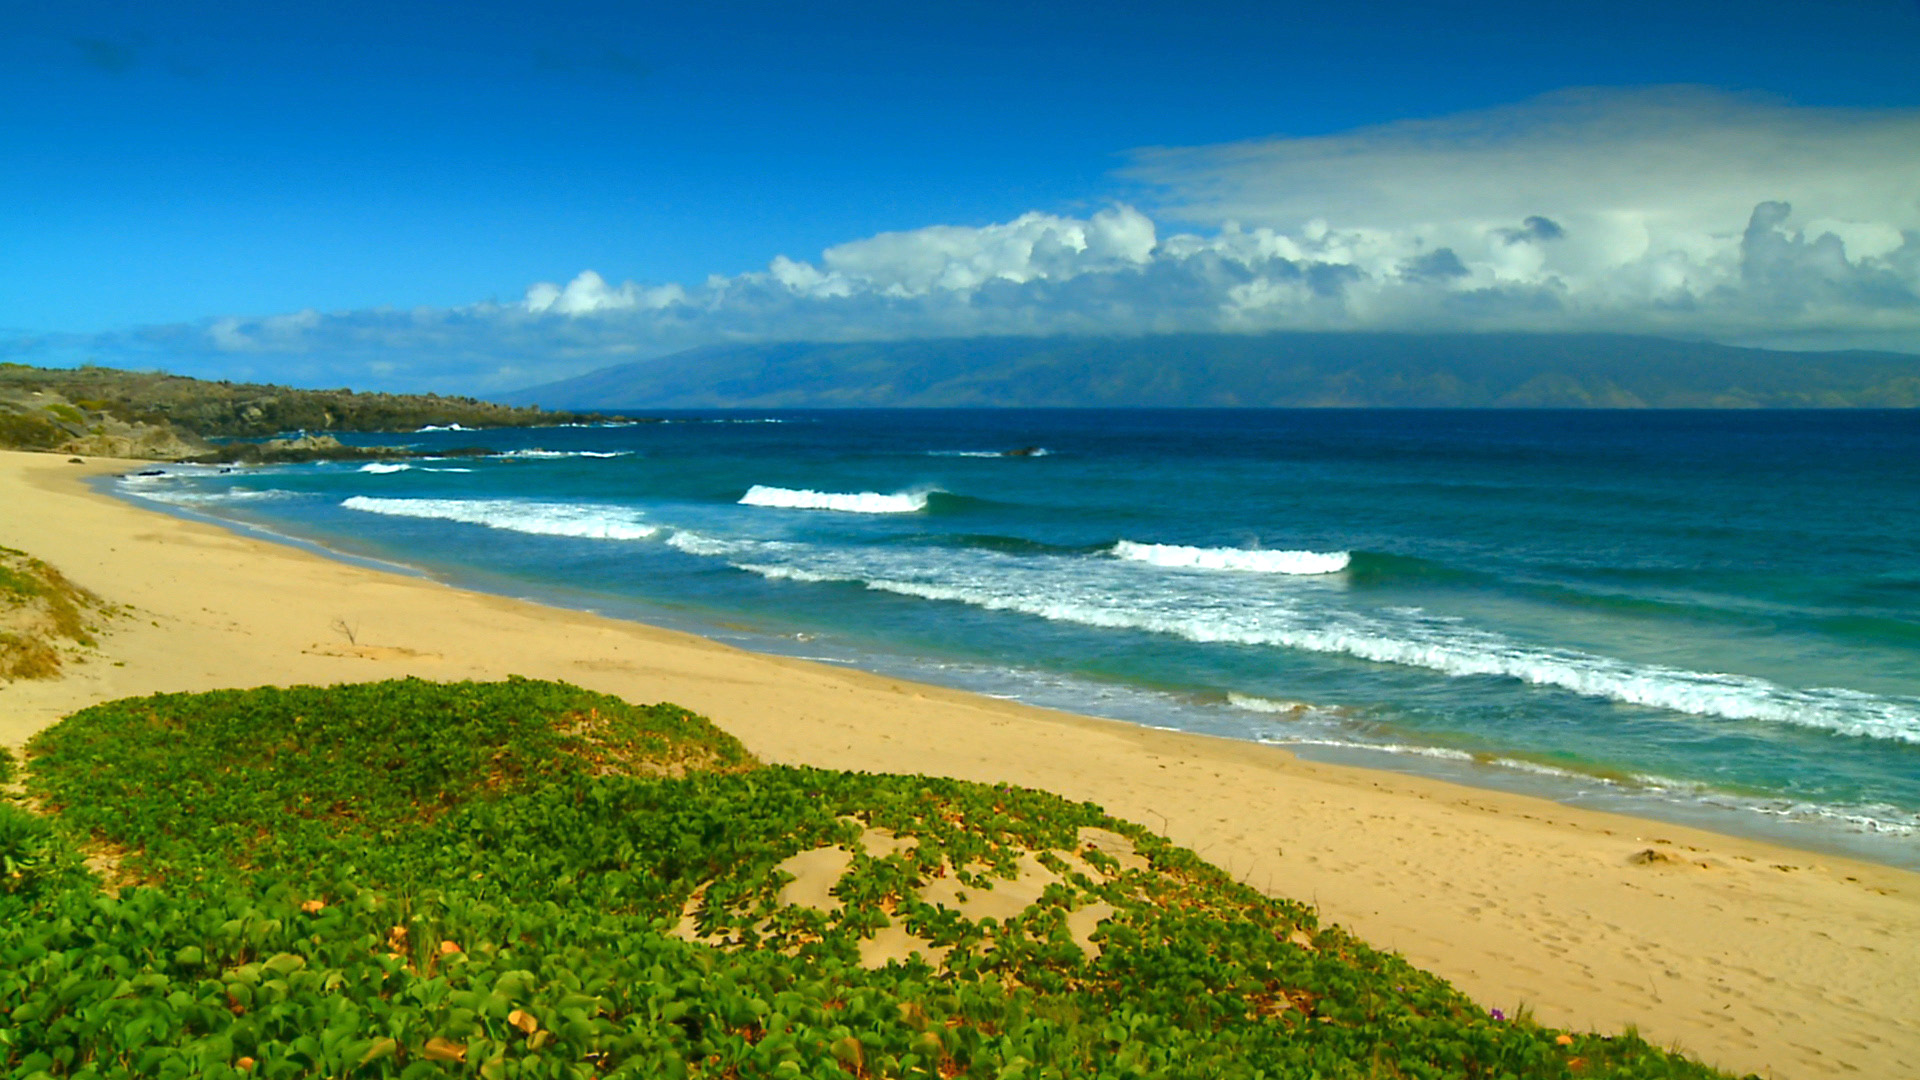 Hawaii Beaches wallpaper 43041 1920x1080